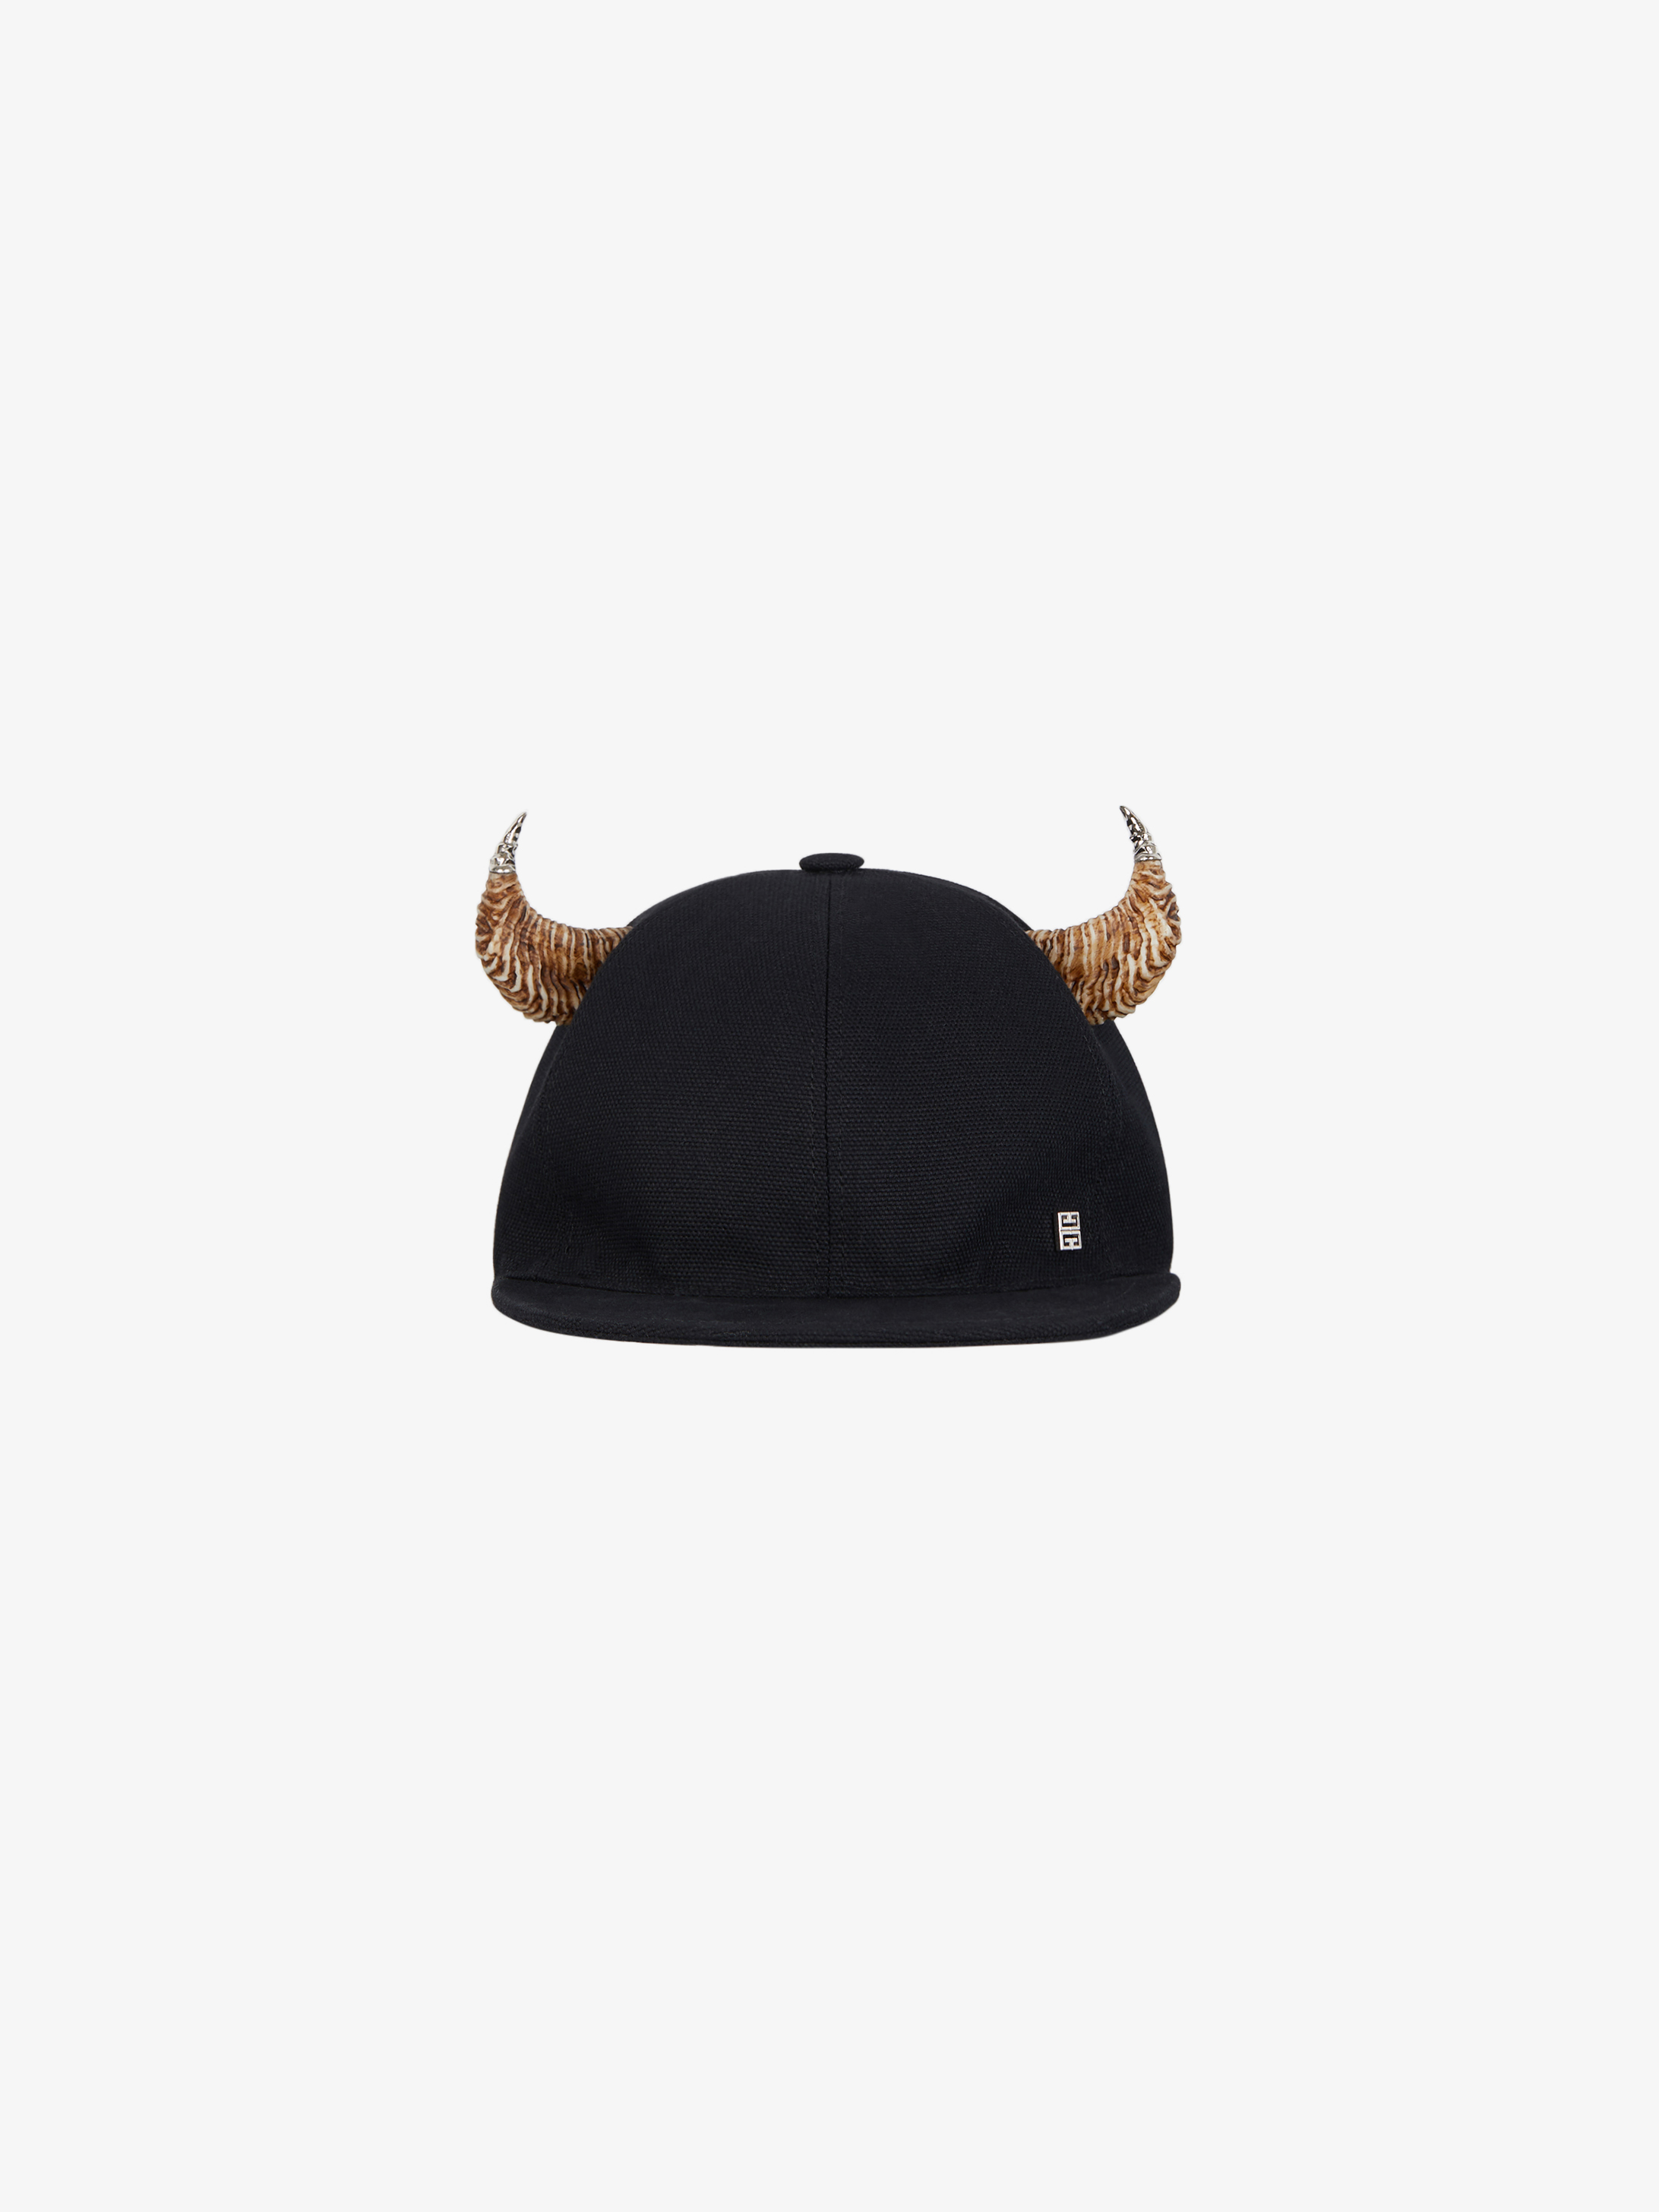 Cap in canvas with horns